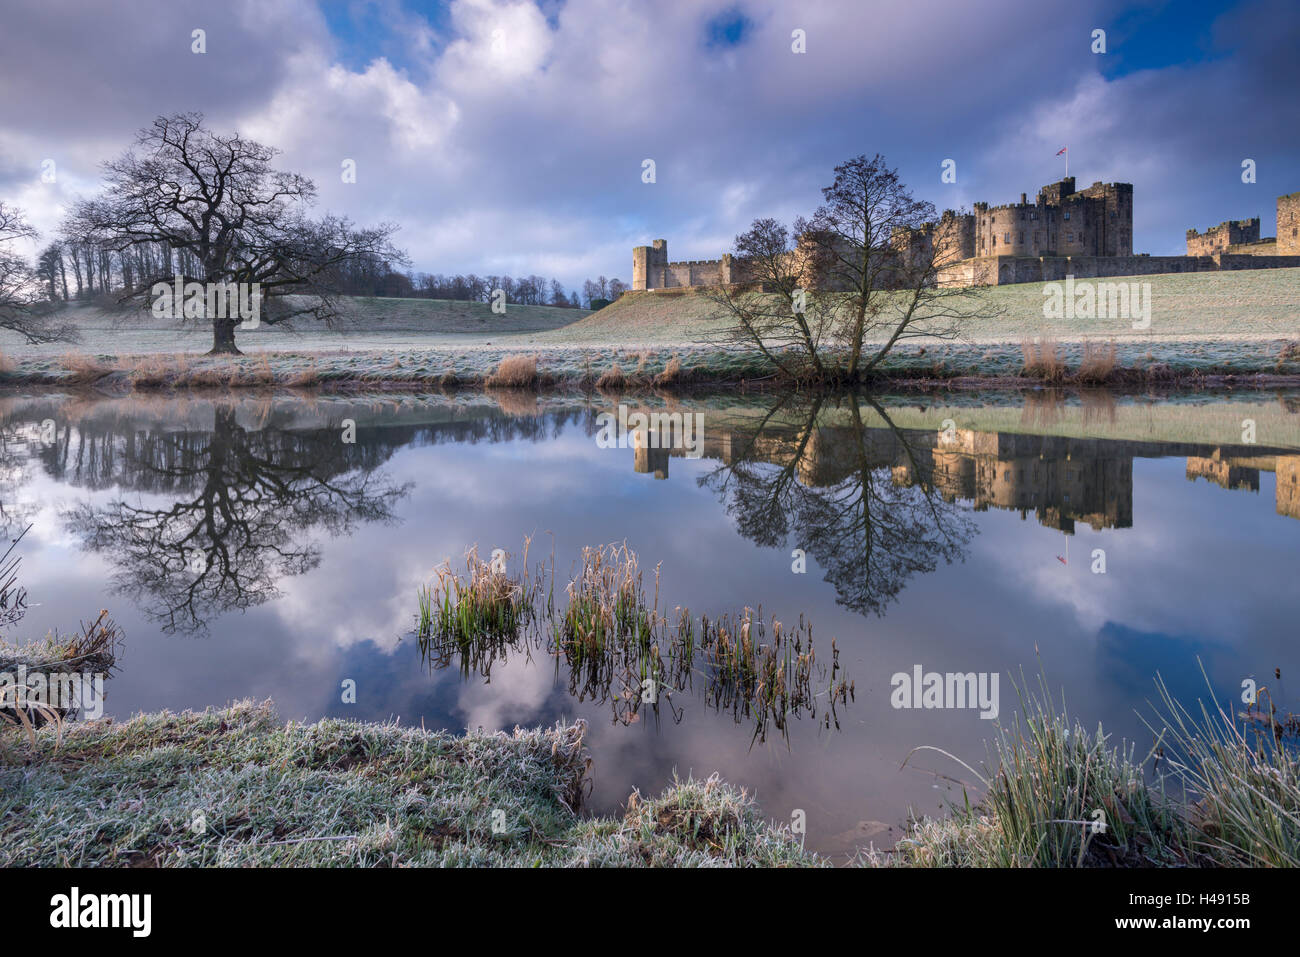 Cold and frosty conditions at Alnwick Castle in Northumberland, England. Winter (March) 2014. - Stock Image